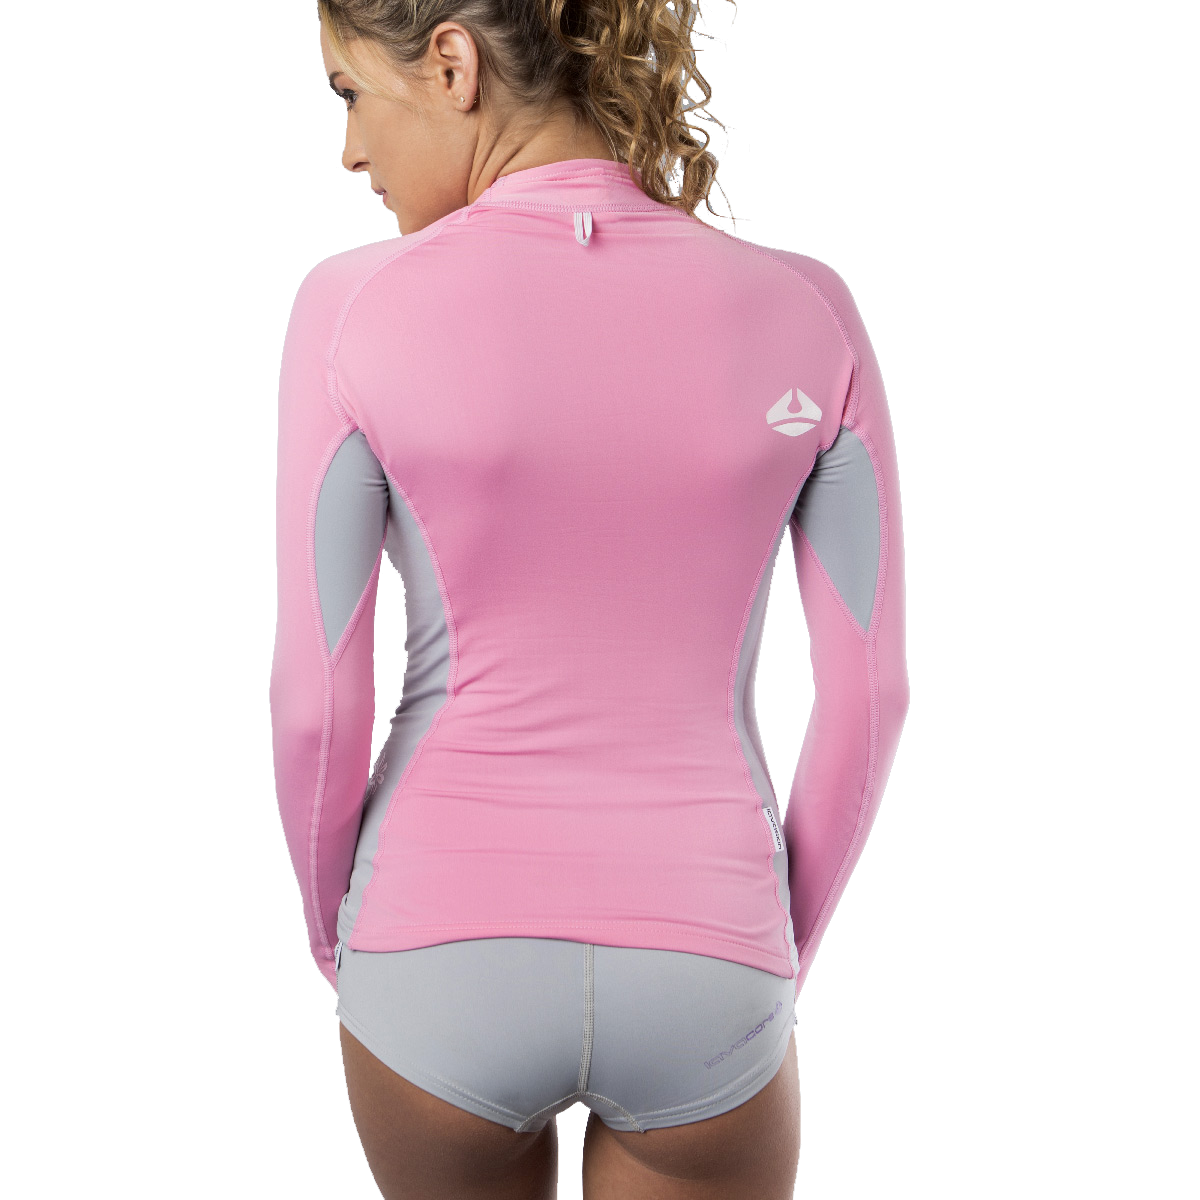 LS_LS_women_pink_back2.png